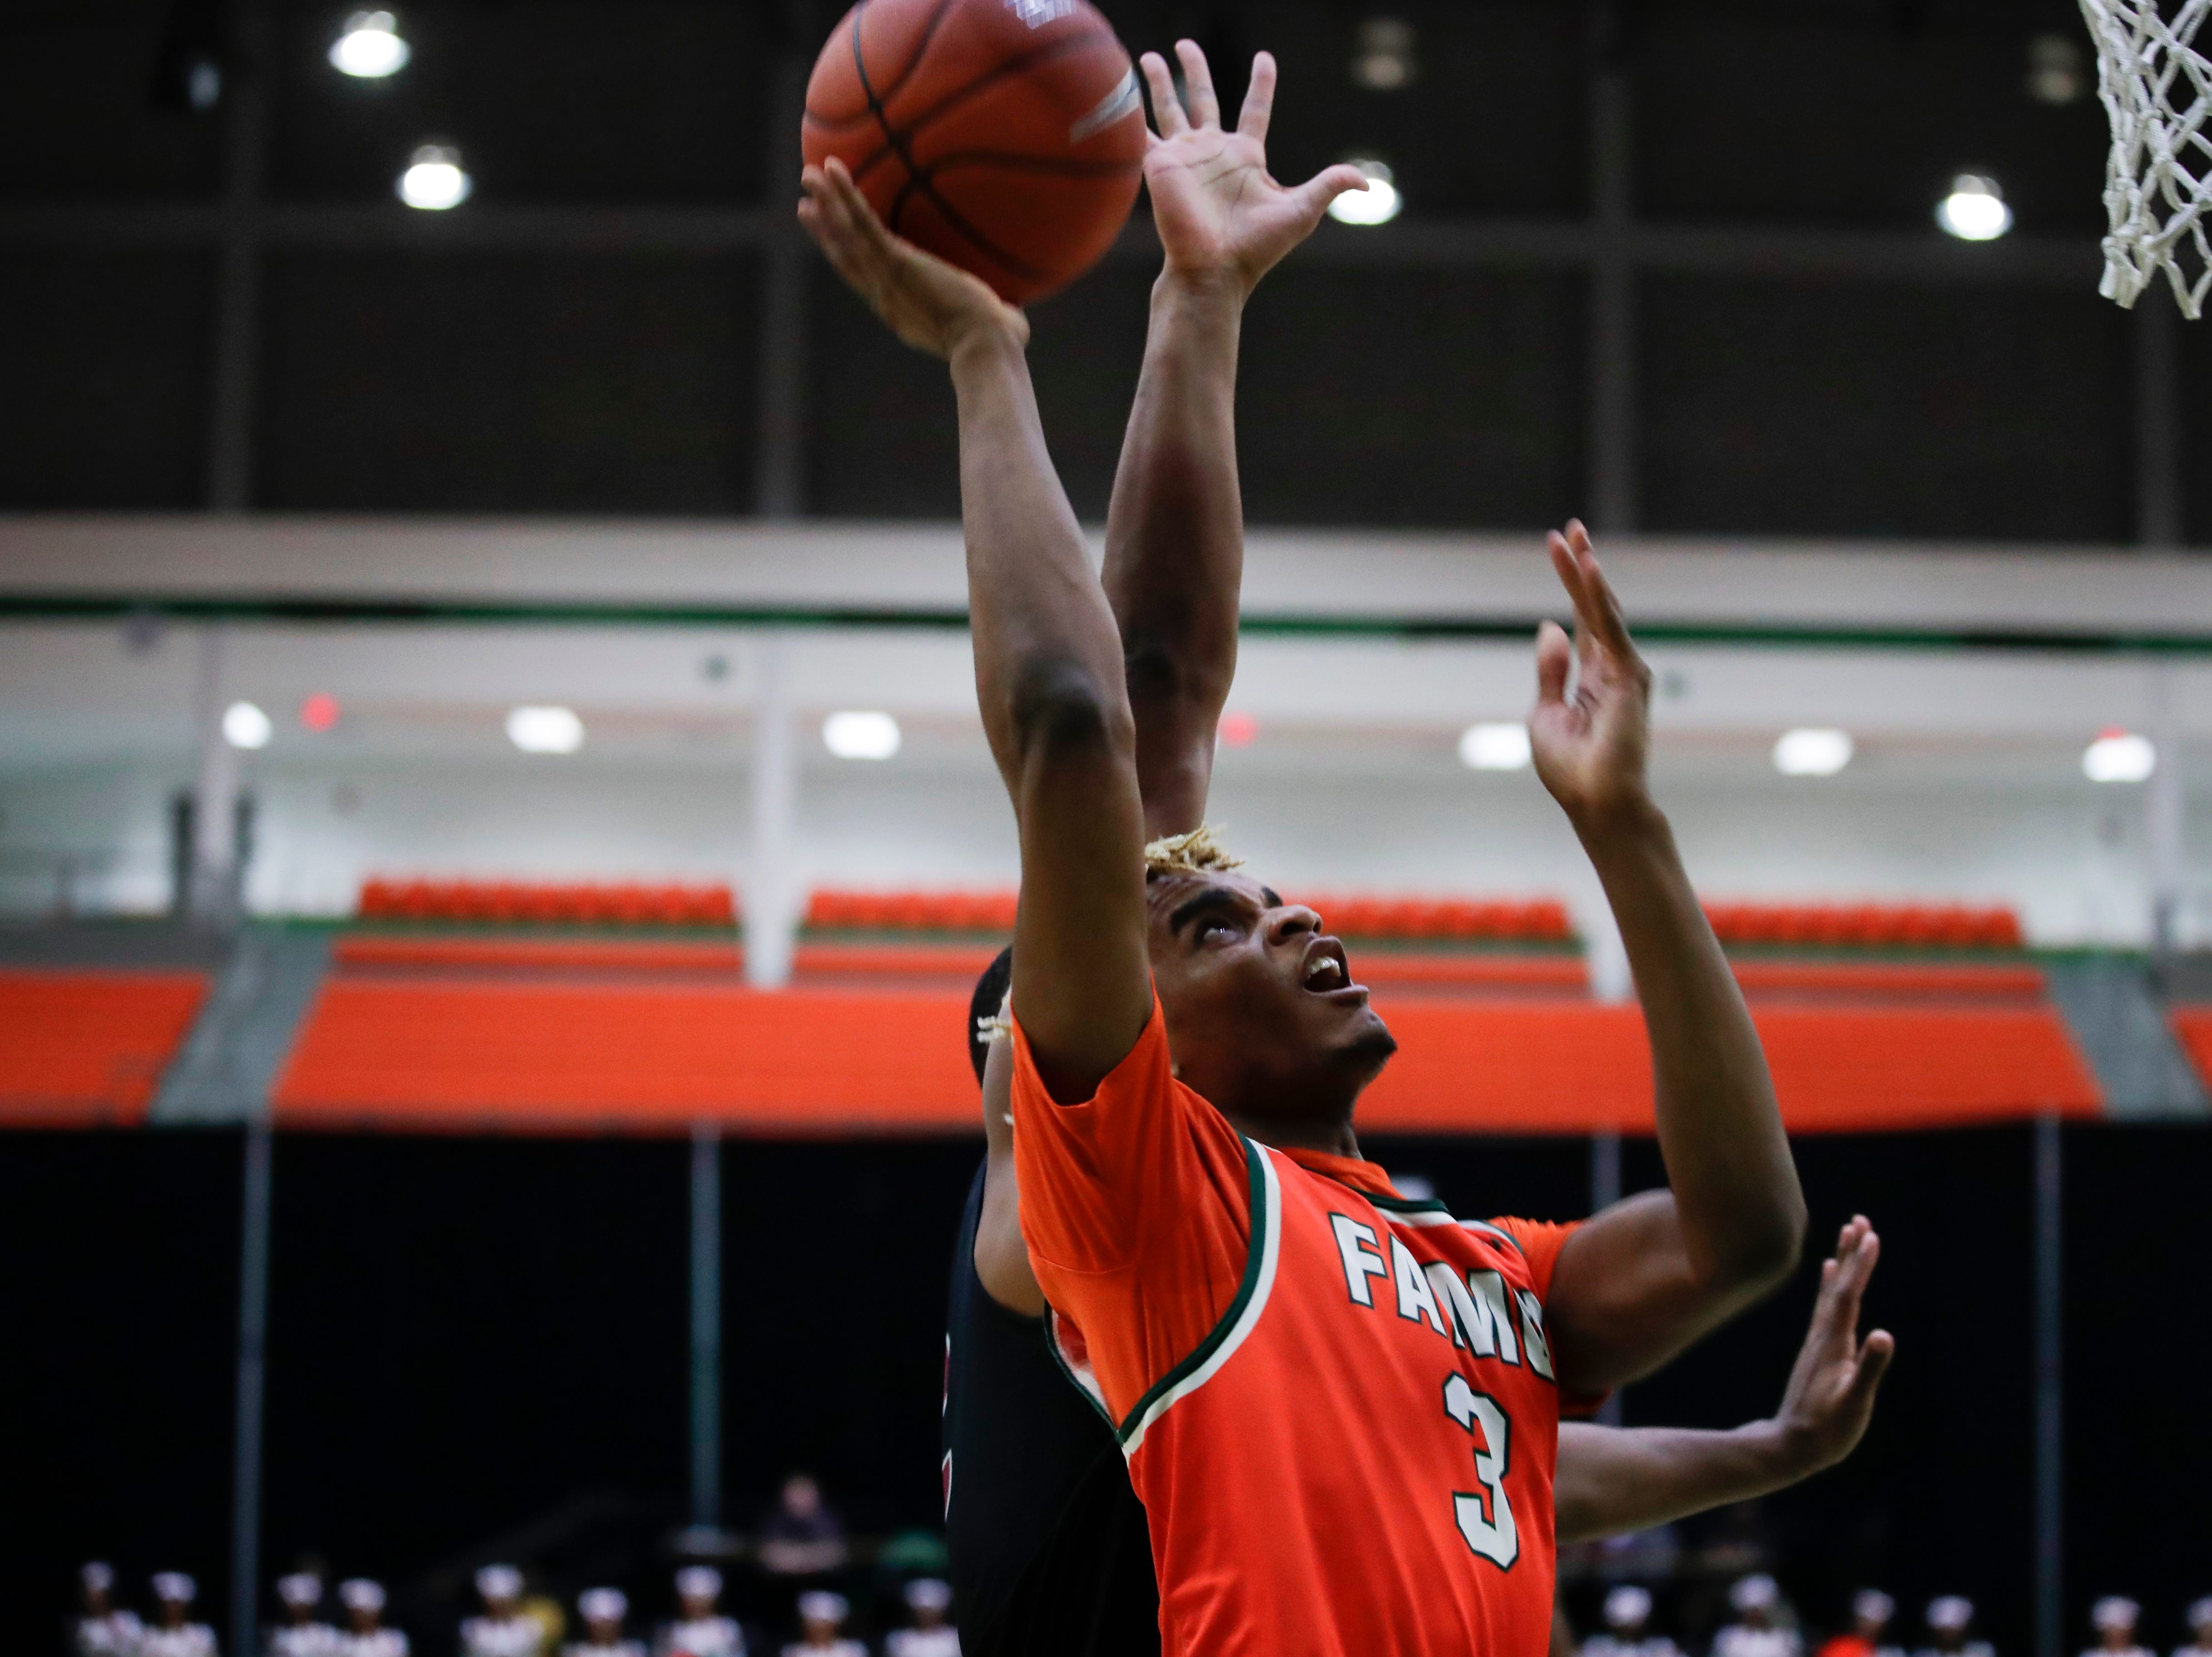 Florida A&M Rattlers guard M.J. Randolph puts up a shot during a game versus North Carolina Central at the Alfred Lawson Jr. Multipurpose Center Monday, Feb. 4, 2019.